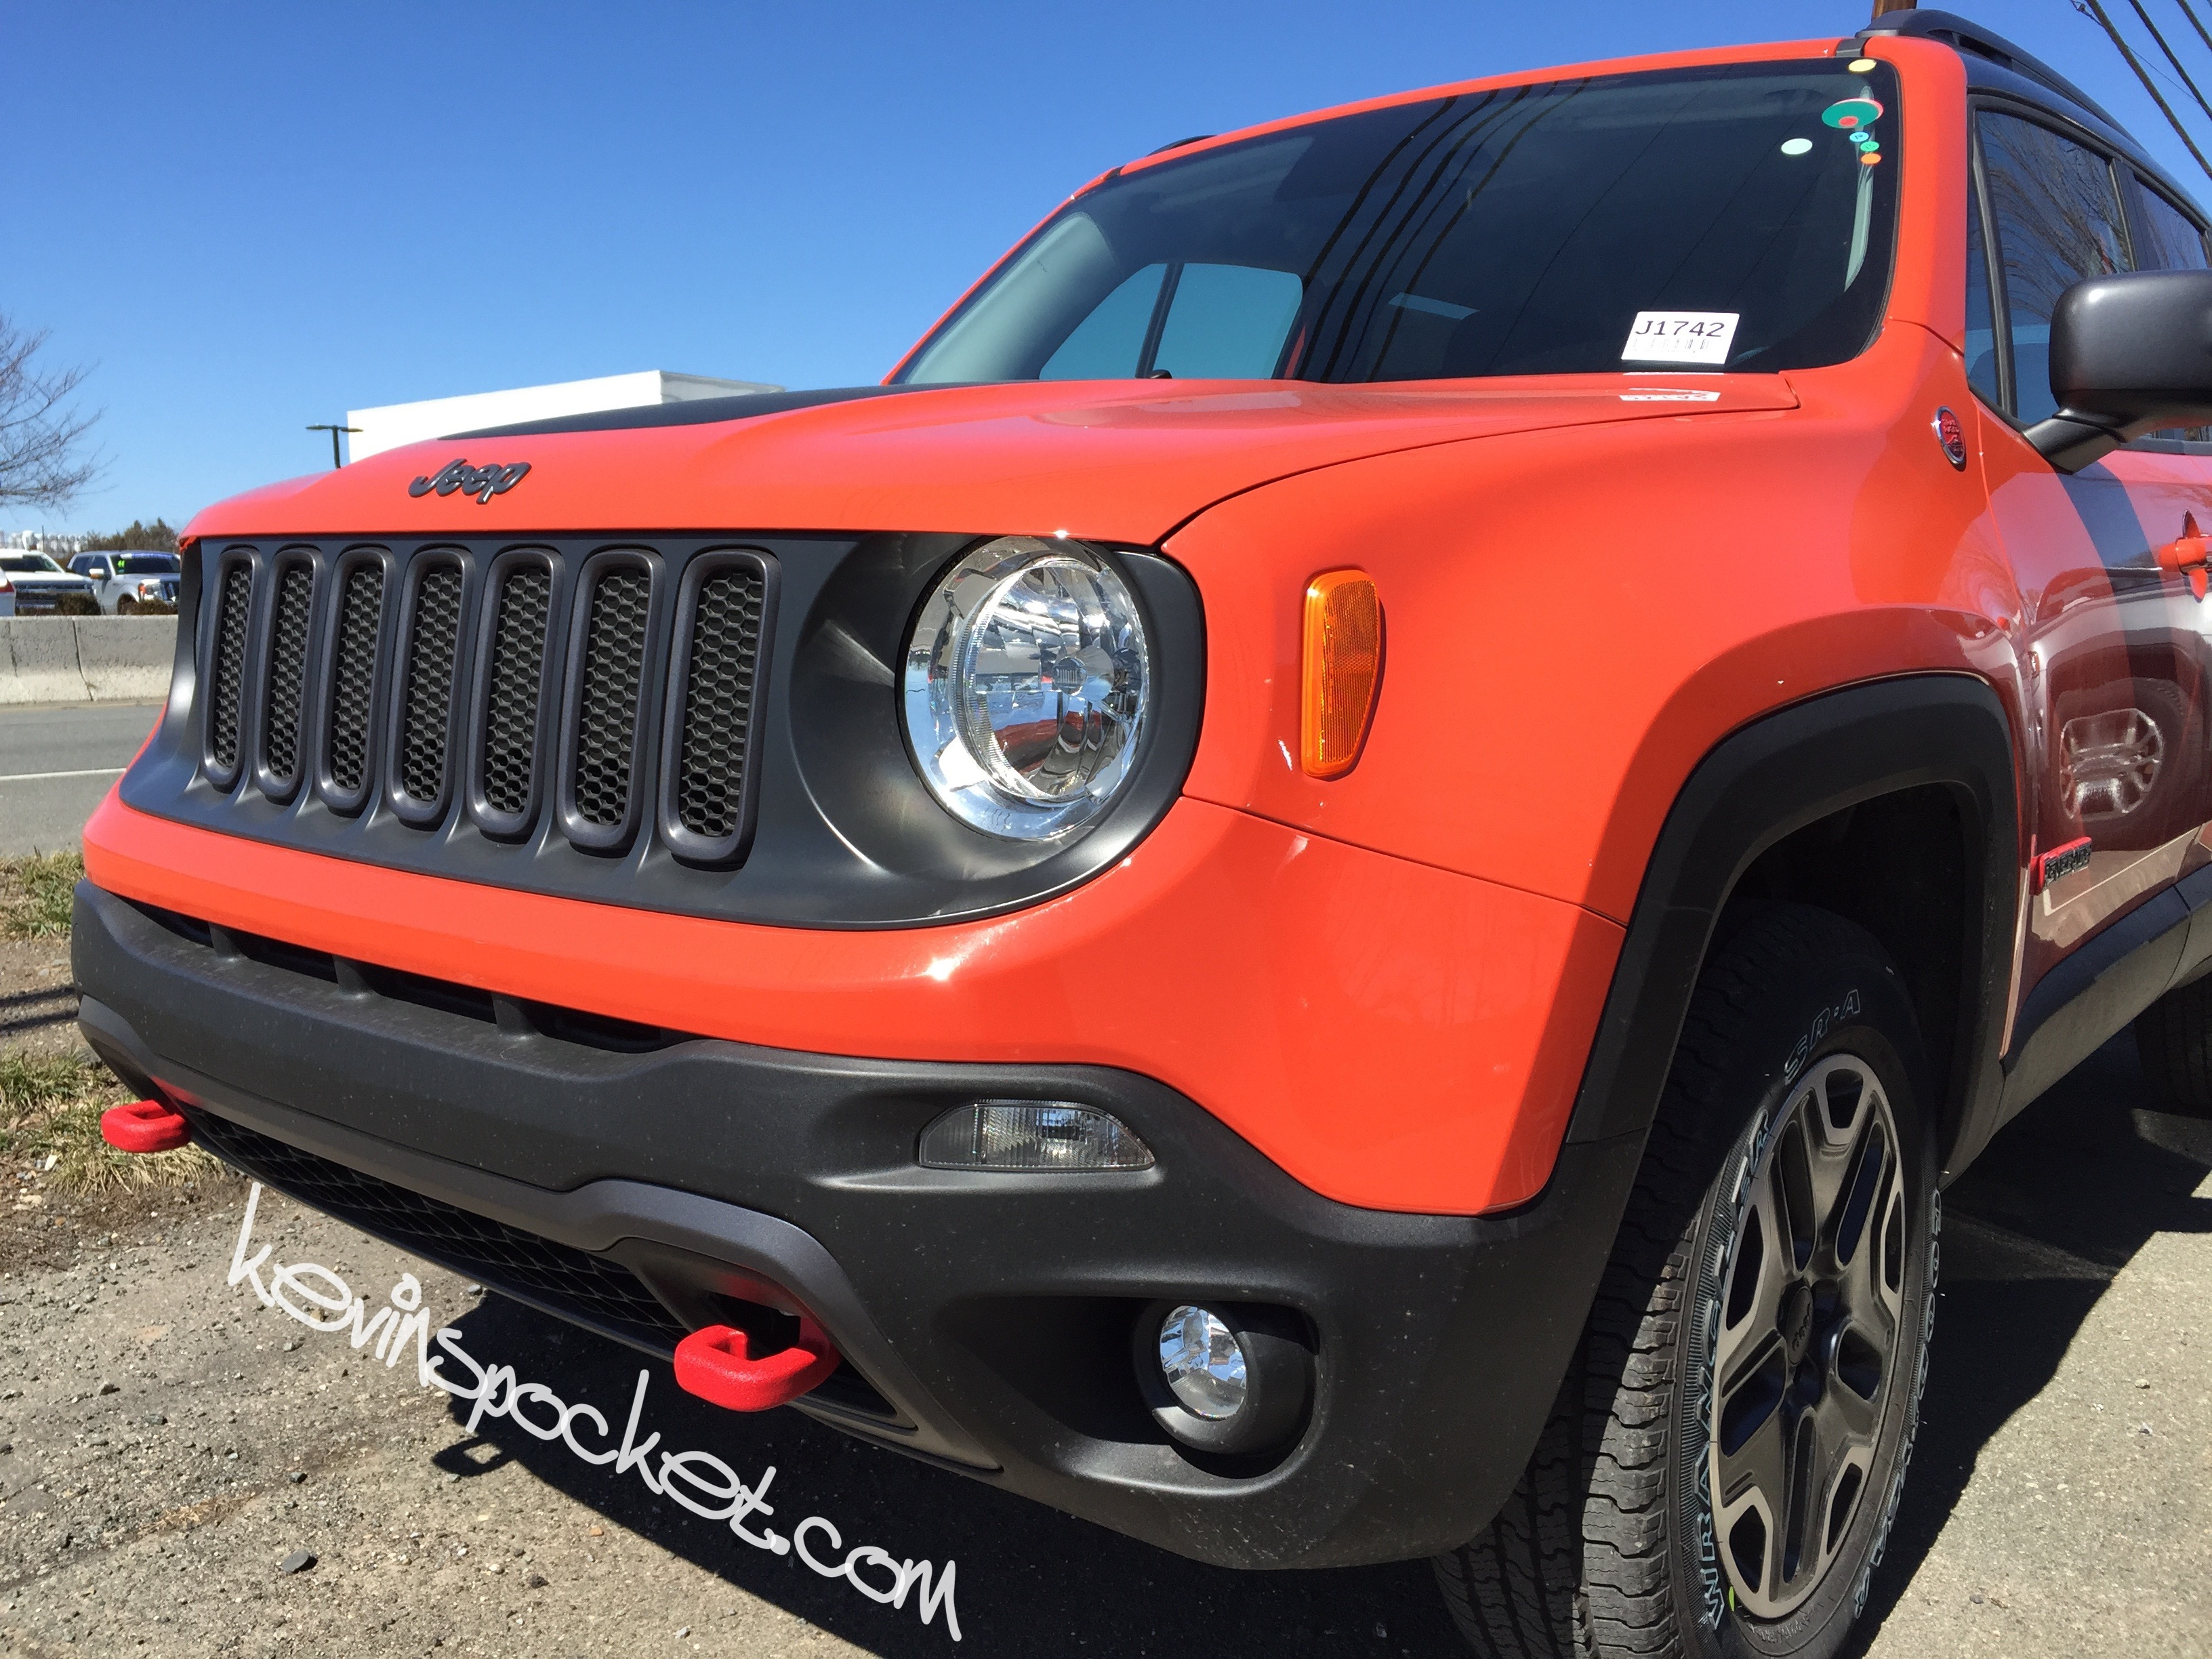 2015 jeep renegade trailhawk omaha orange 002 kevinspocket. Black Bedroom Furniture Sets. Home Design Ideas